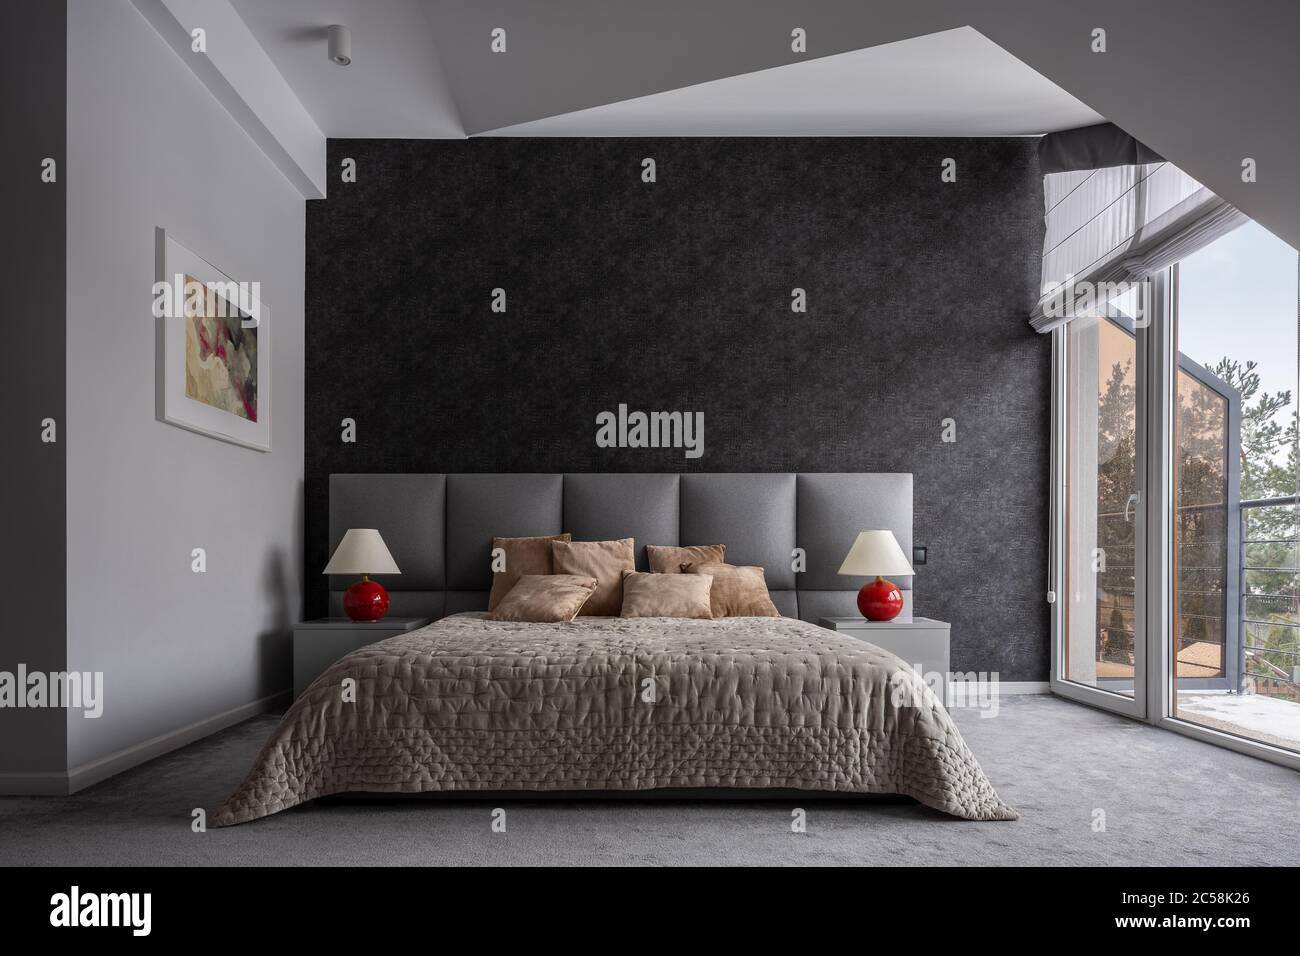 Modern Bedroom With Double Bed Black Wallpaper And Balcony Stock Photo Alamy